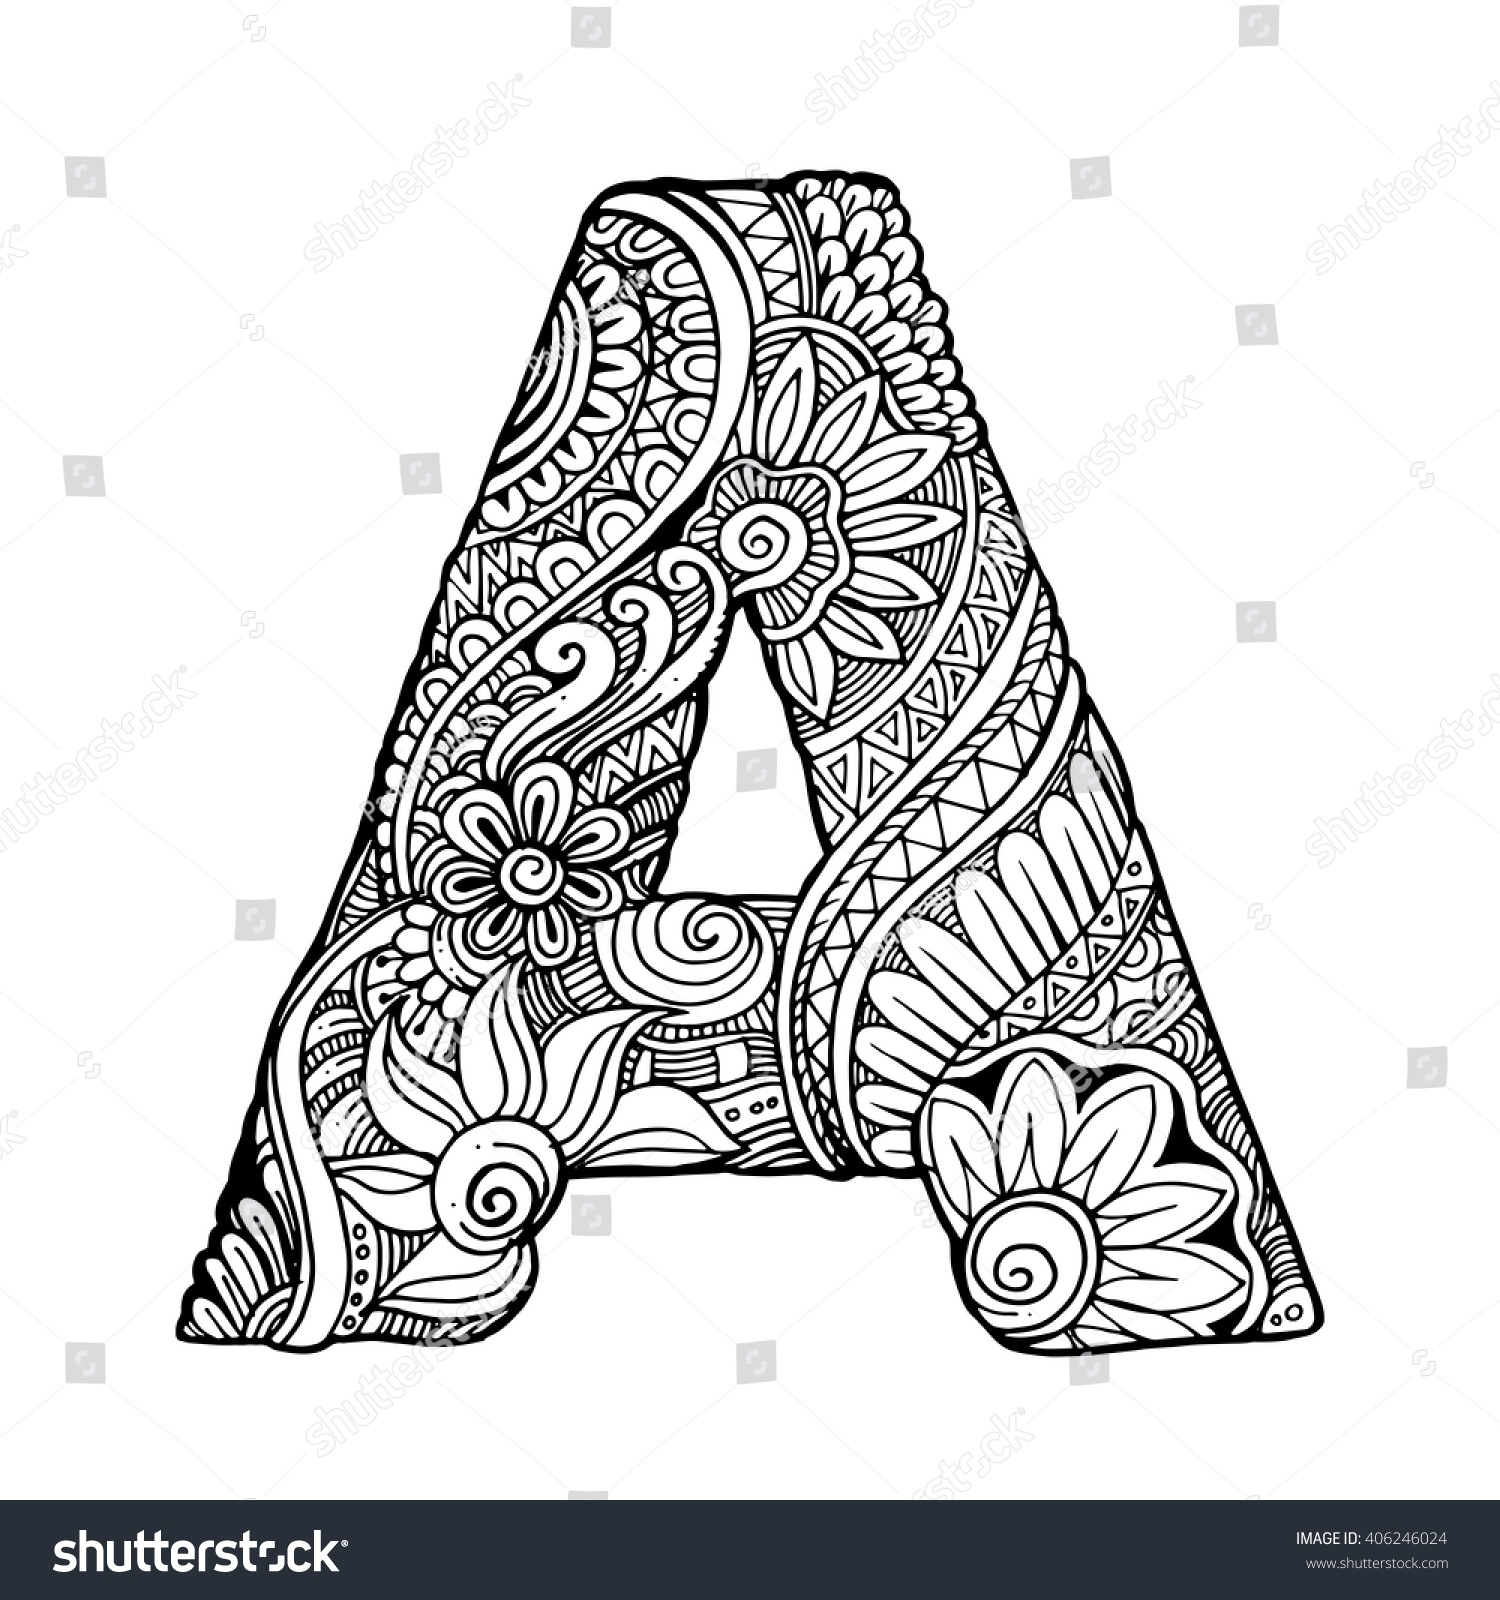 ornament coloring page - stock vector zentangle stylized alphabet letter a vector illustration black white hand drawn doodle ethnic